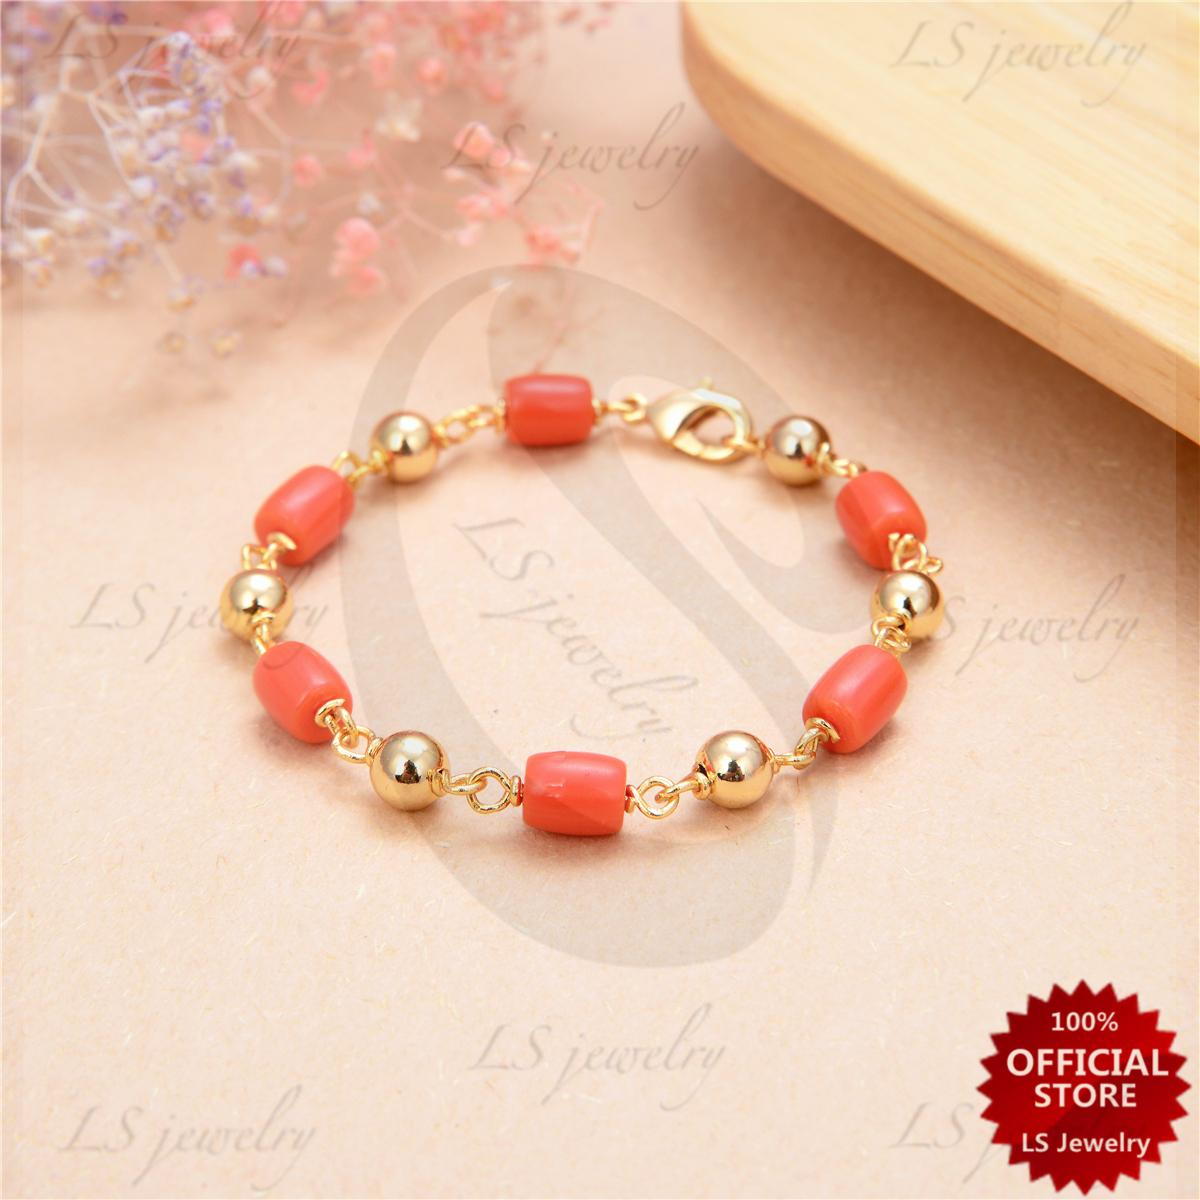 Lsjewelry Lucky Charms Corals And Rose Gold Bracelet For Kids By Ls Jewelry.